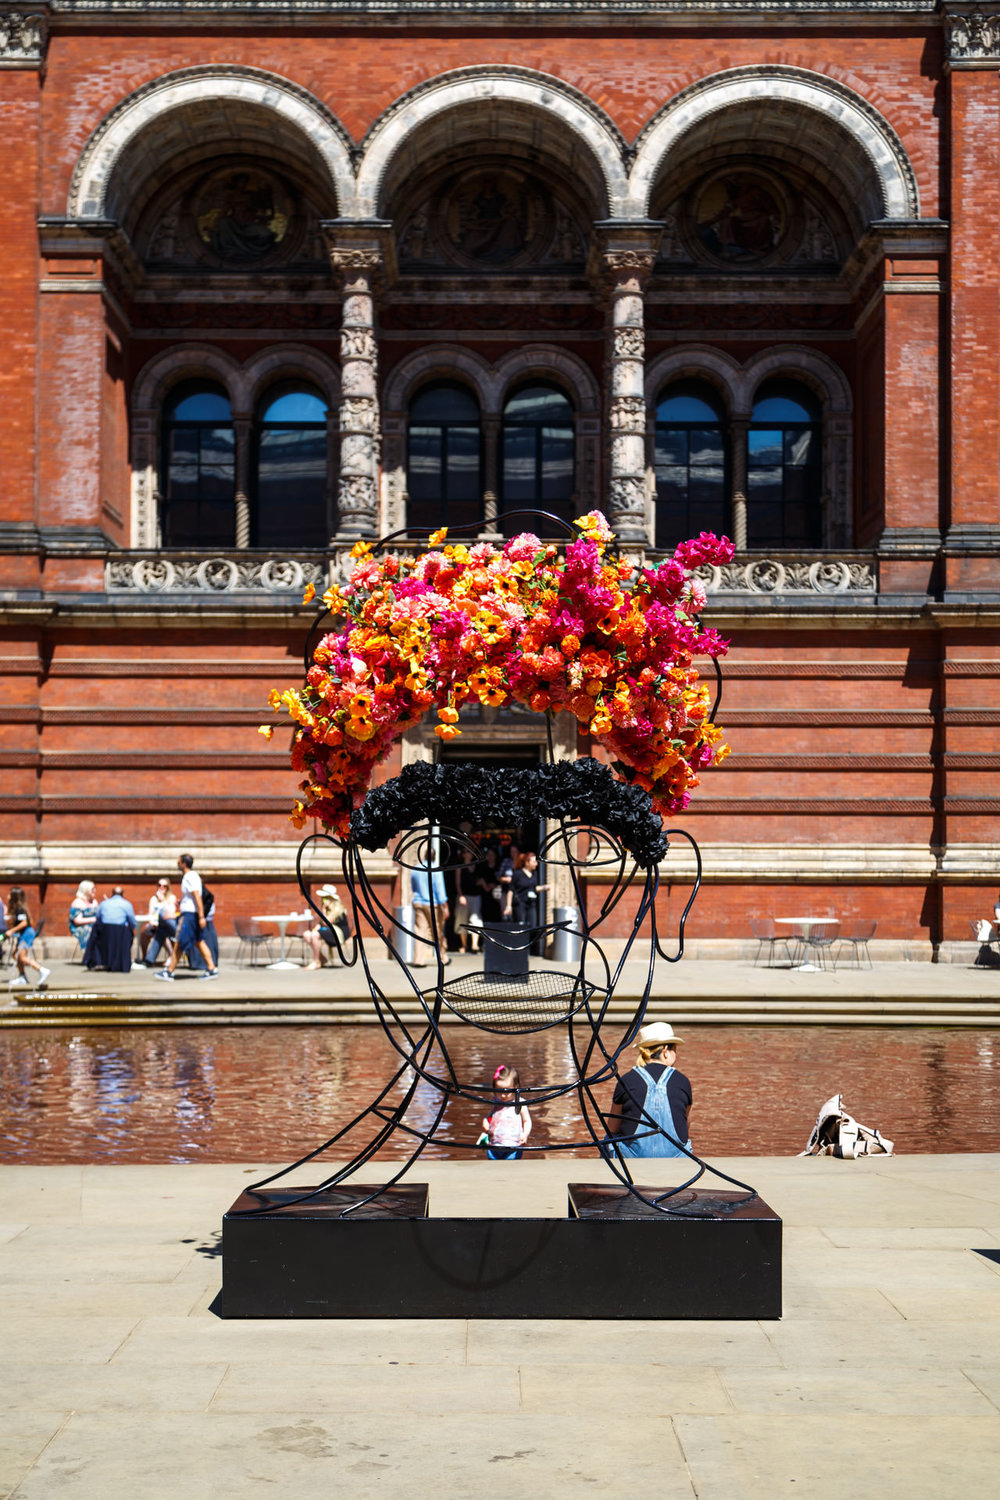 Frida Kahlo sculpture to tie-in with the exhibition.